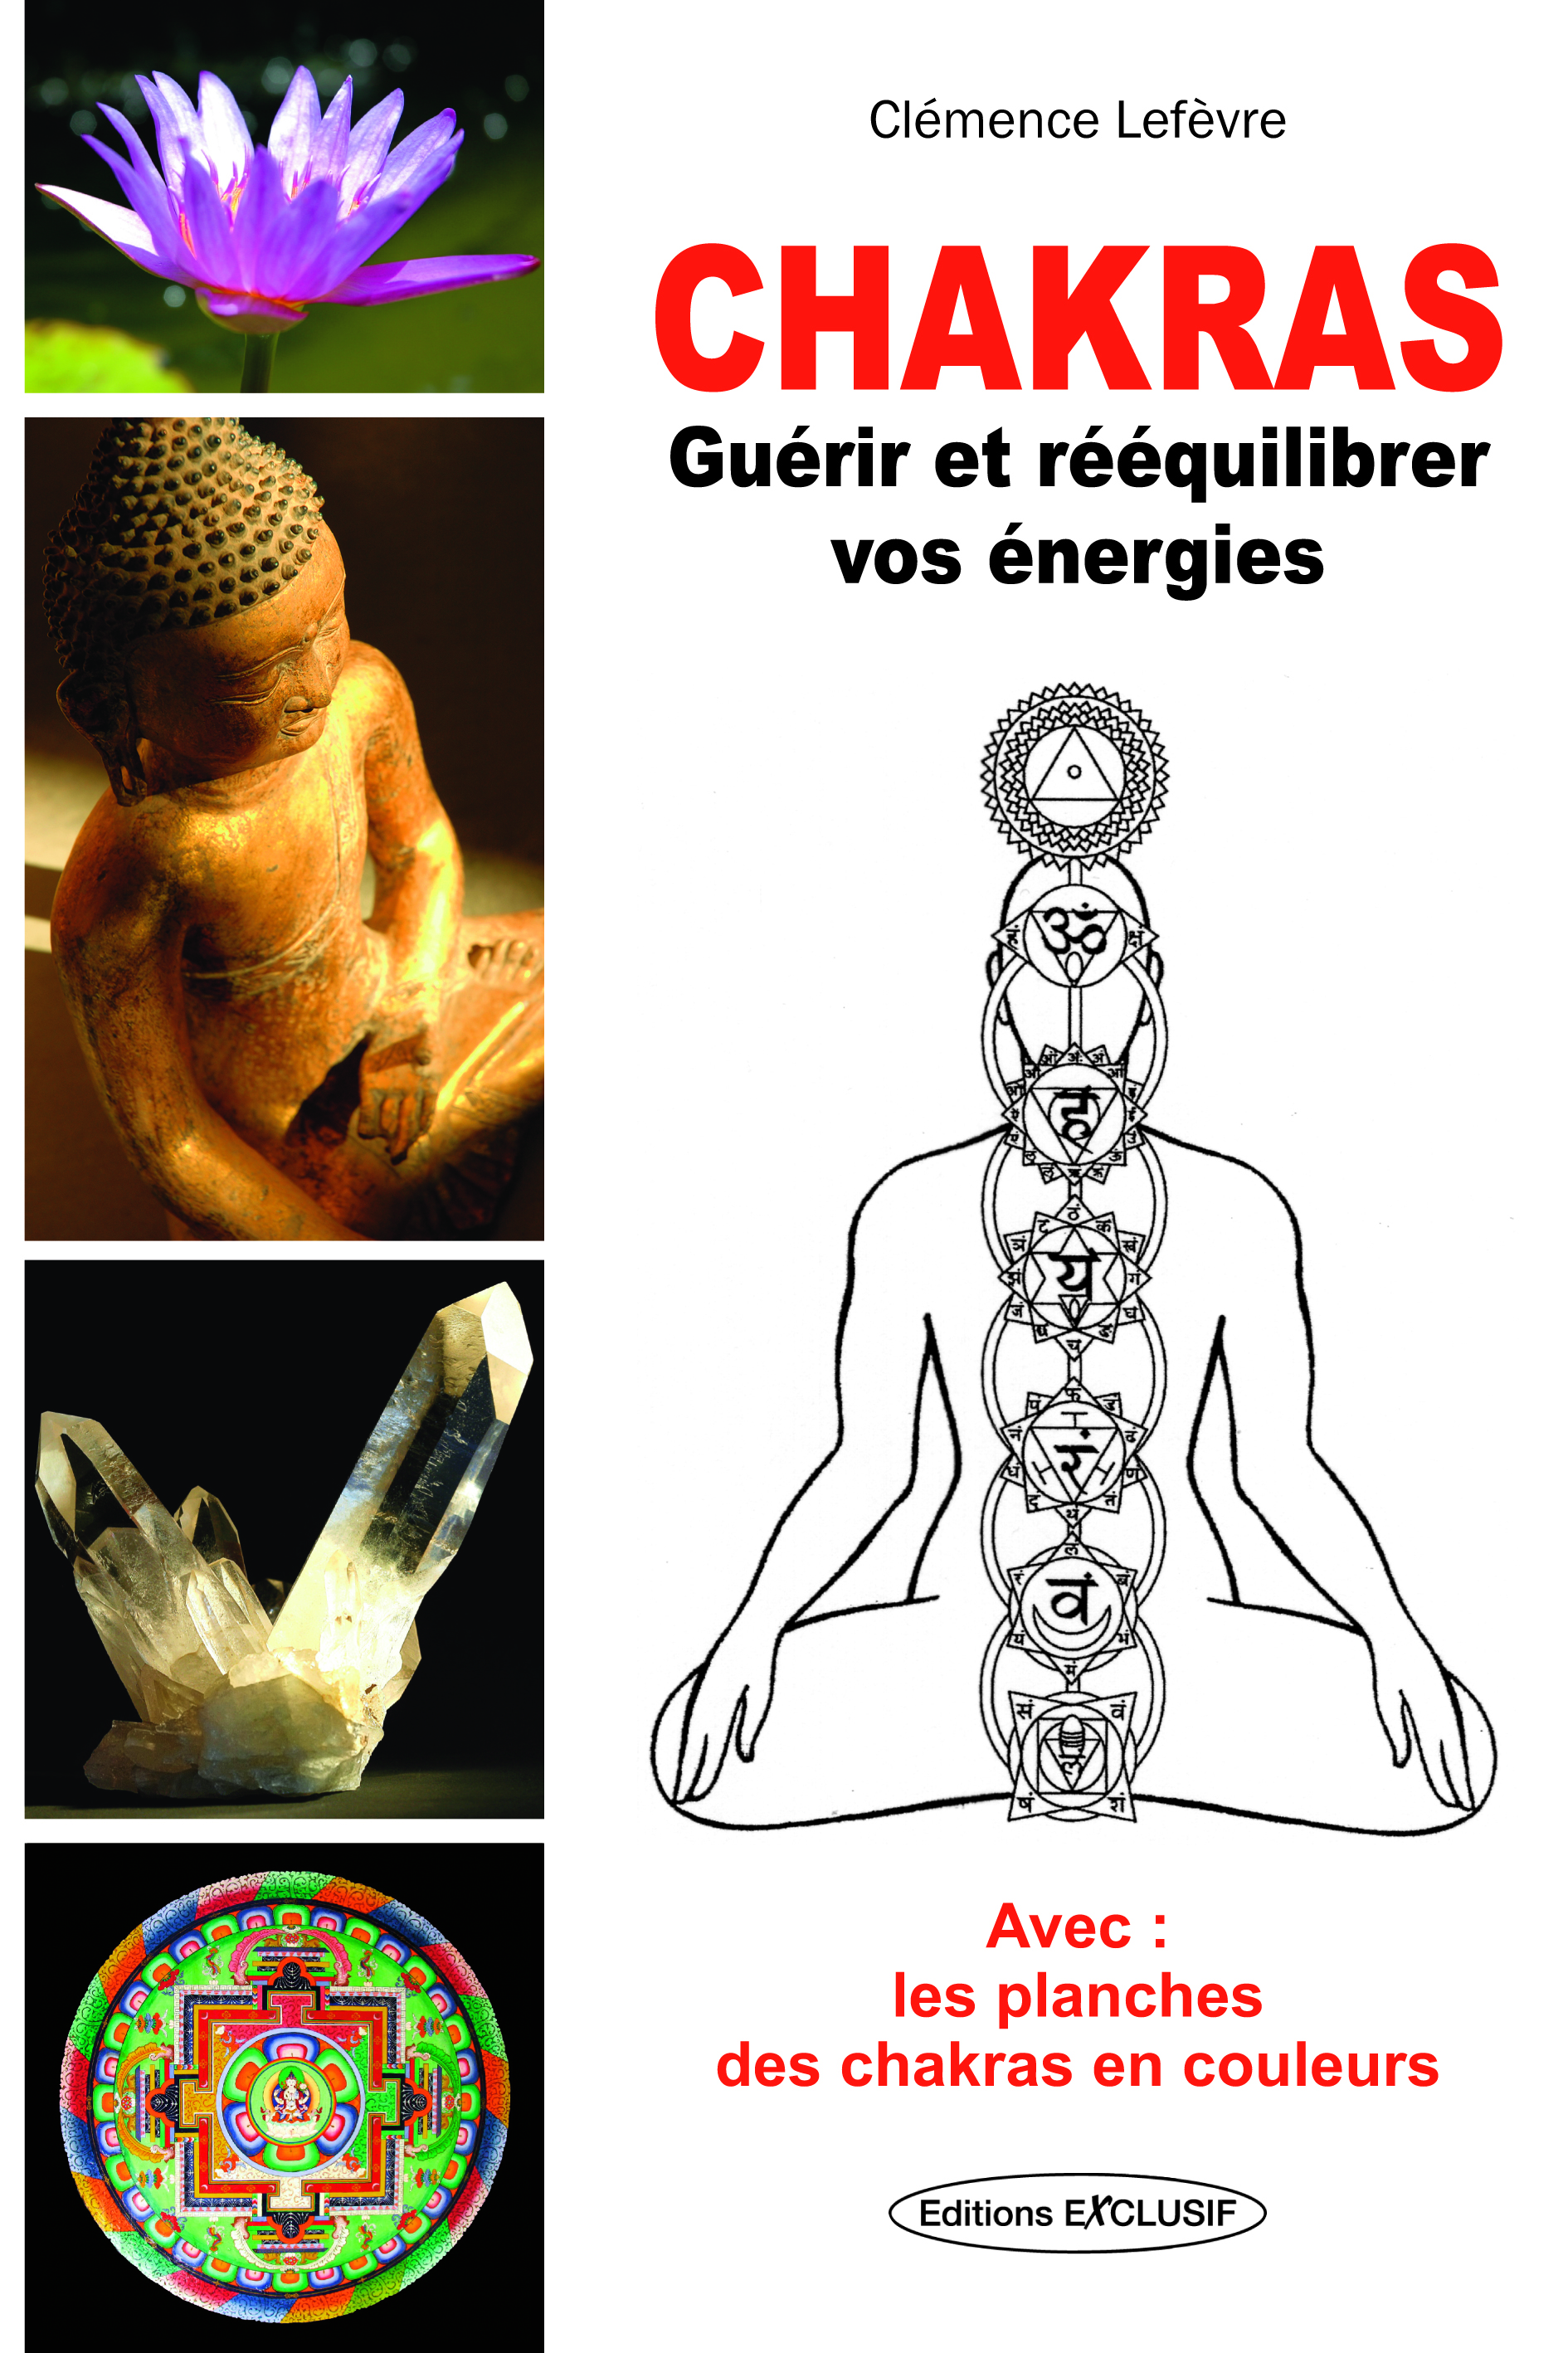 CHAKRAS - GUERIR ET REEQUILIBRER VOS ENERGIES